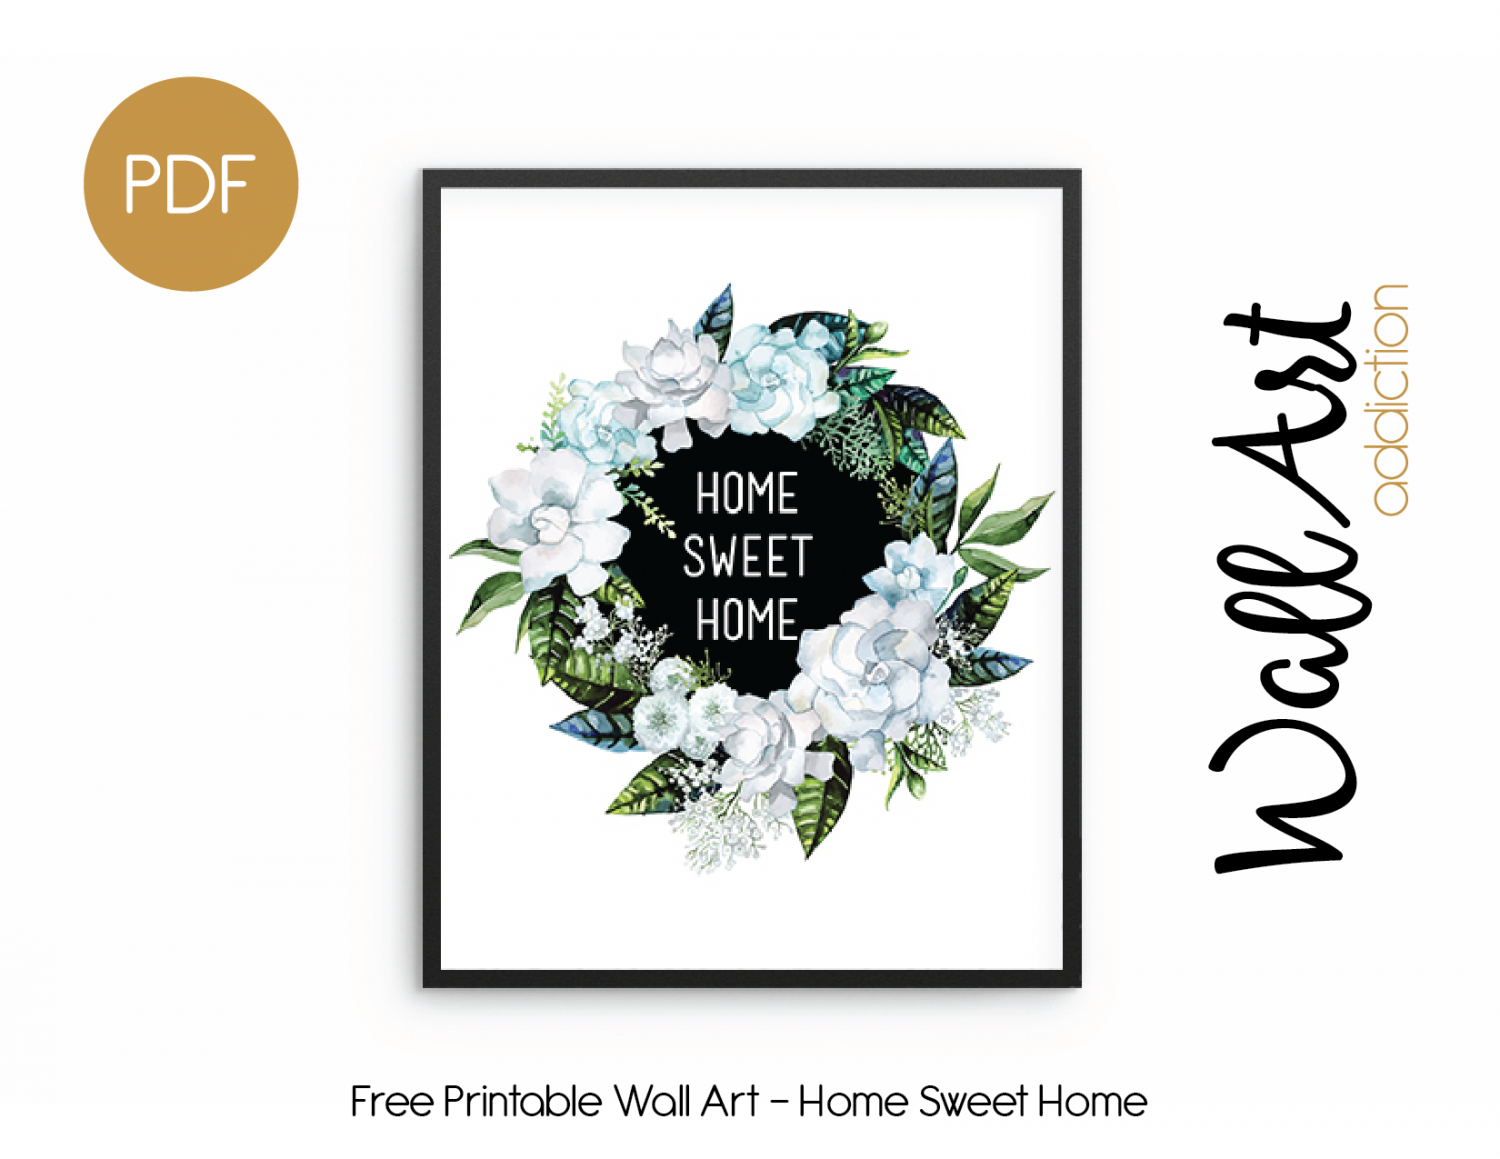 Wall Art Addiction | Home Sweet Home - Free Printable Artwork For Home